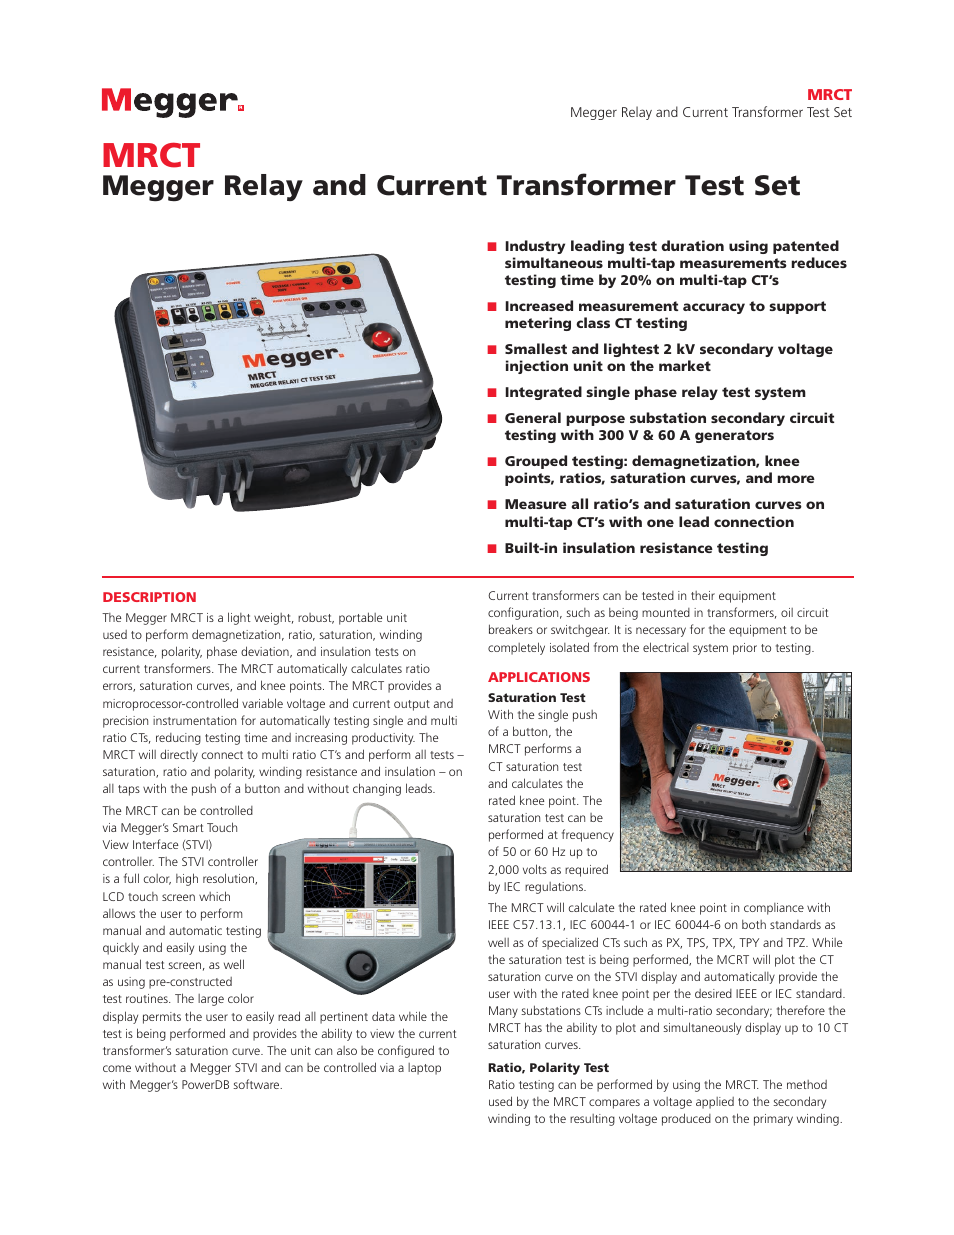 Atec Megger Mrct User Manual 8 Pages Current Transformer In Relay